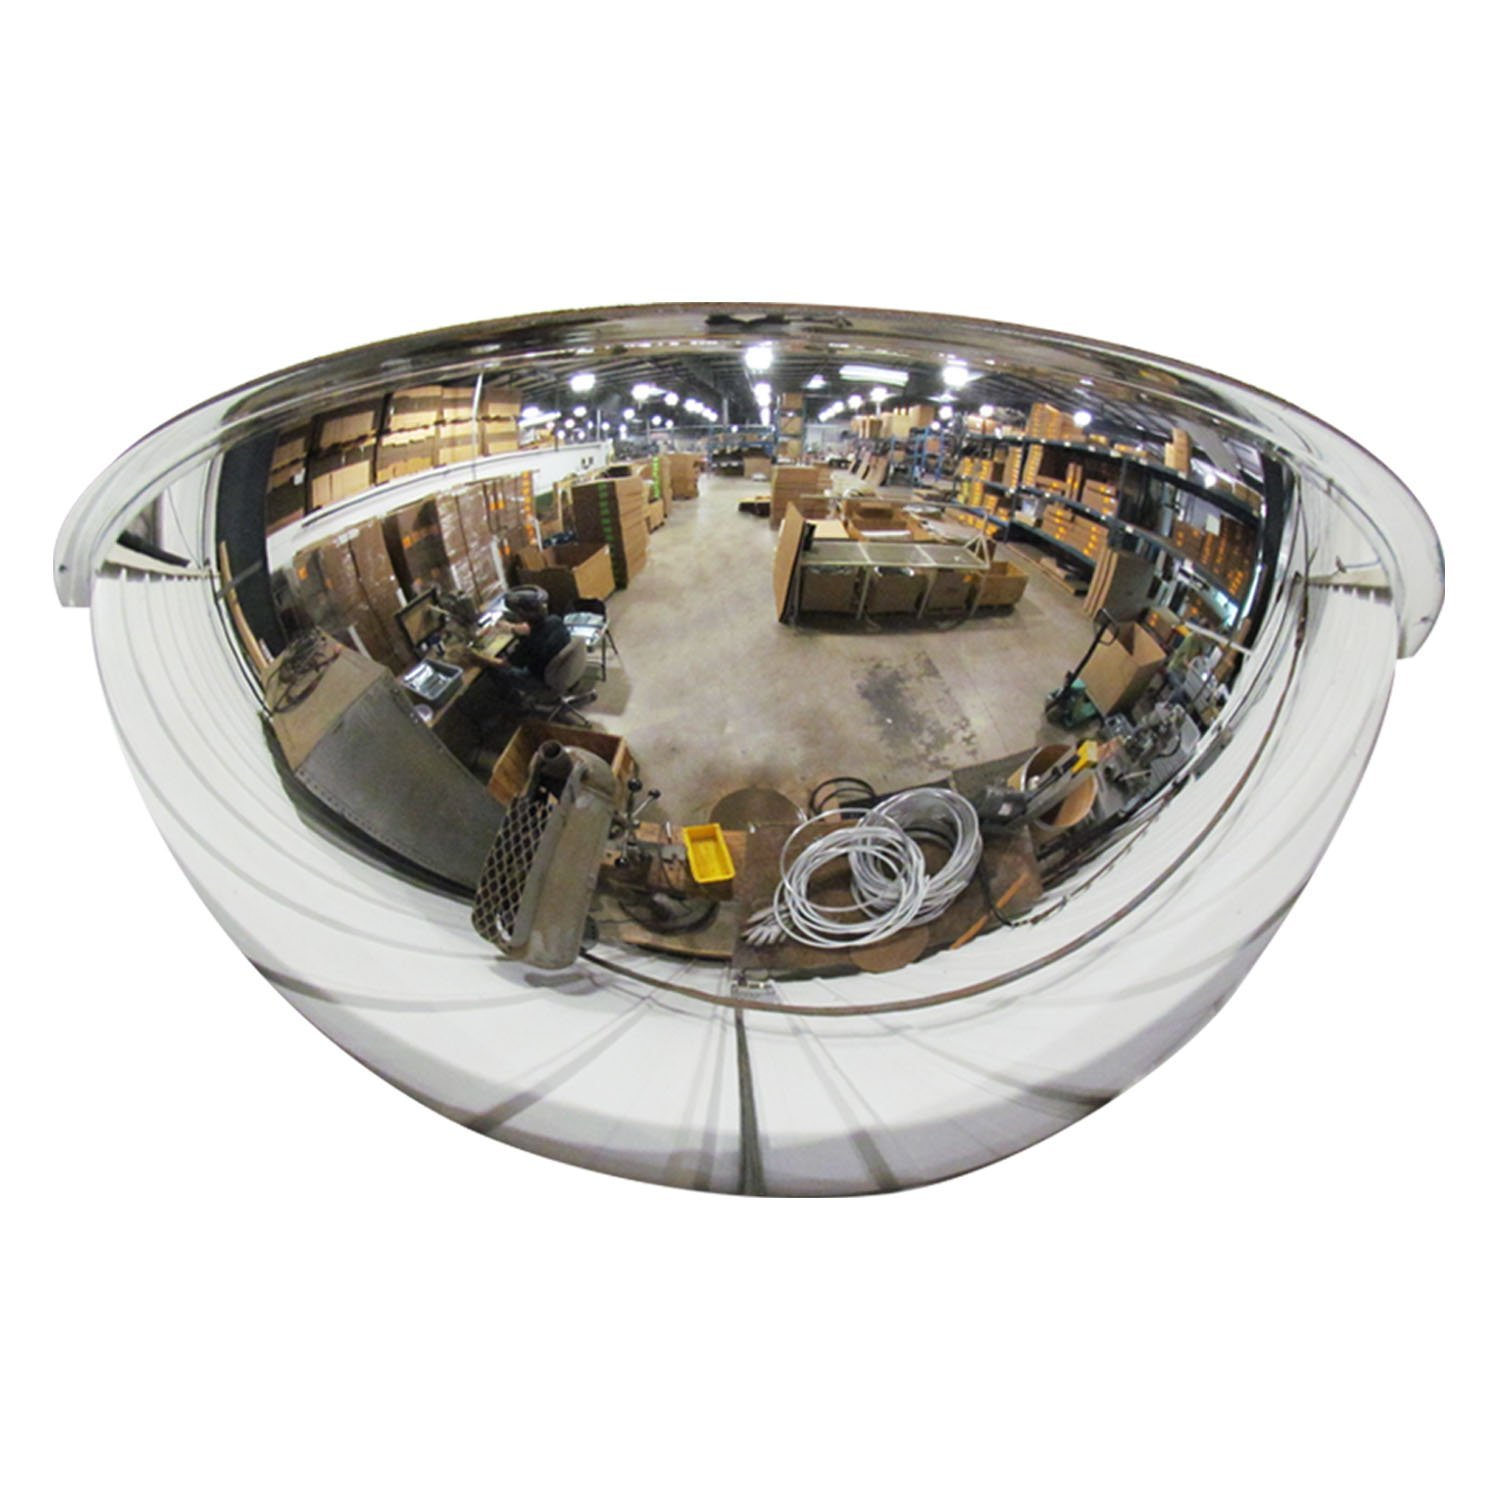 Se-Kure DCVO26TPB 26 in Outdoor Convex Mirror, Acrylic Lens, Plastic Backing